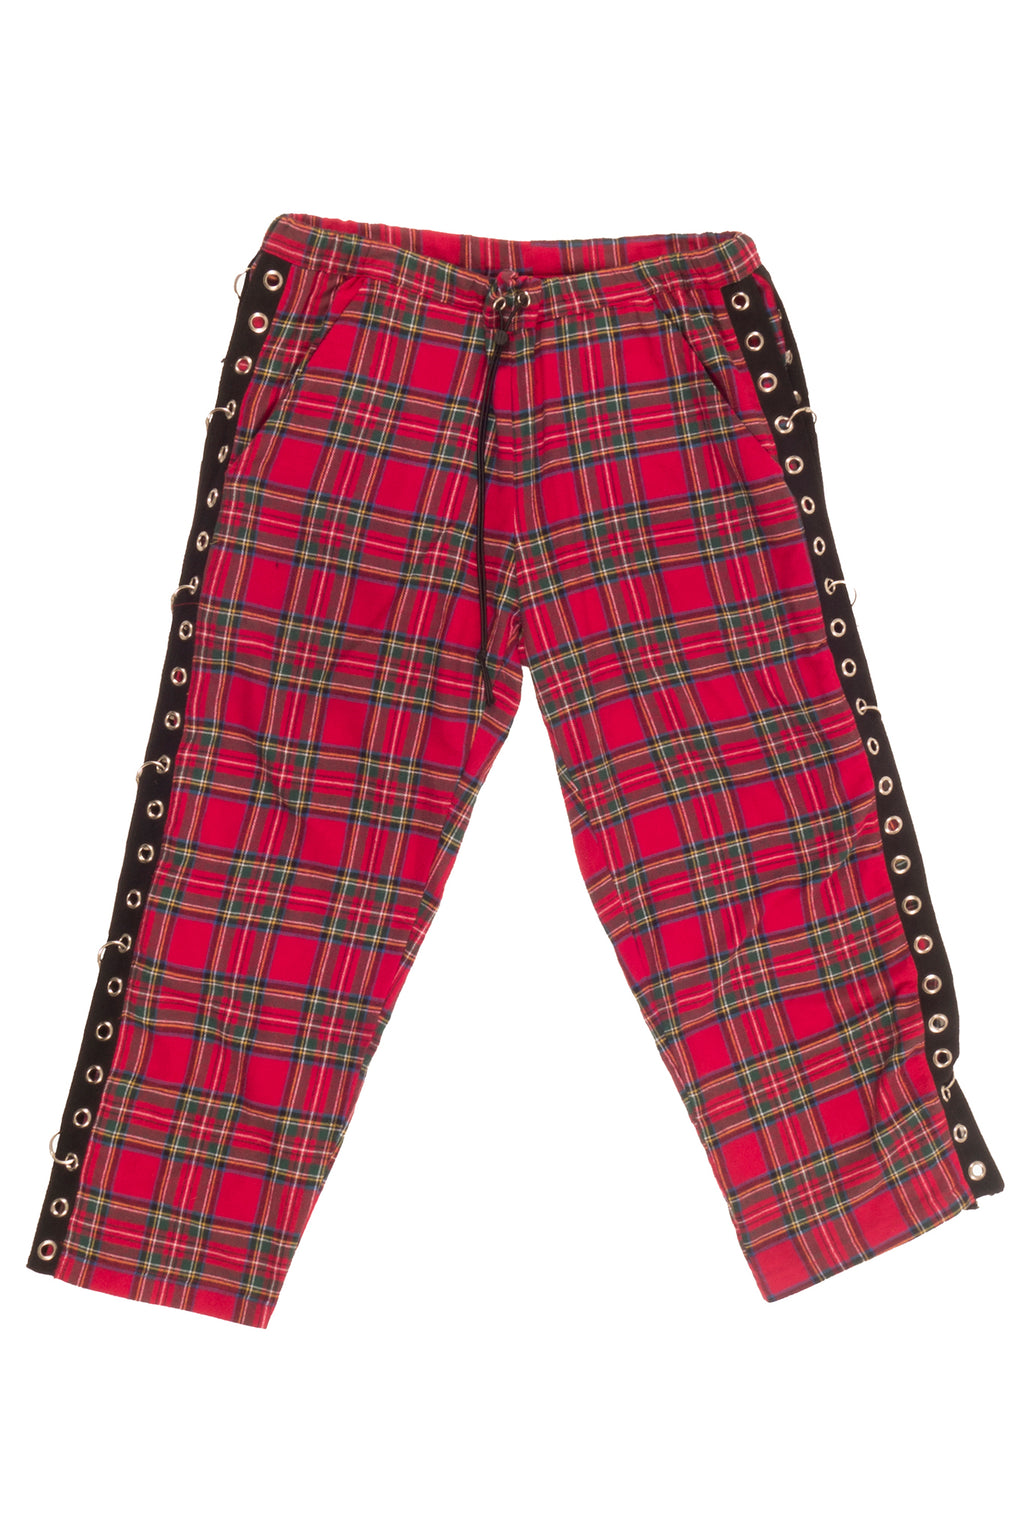 PLAID BREAKAWAY PANTS